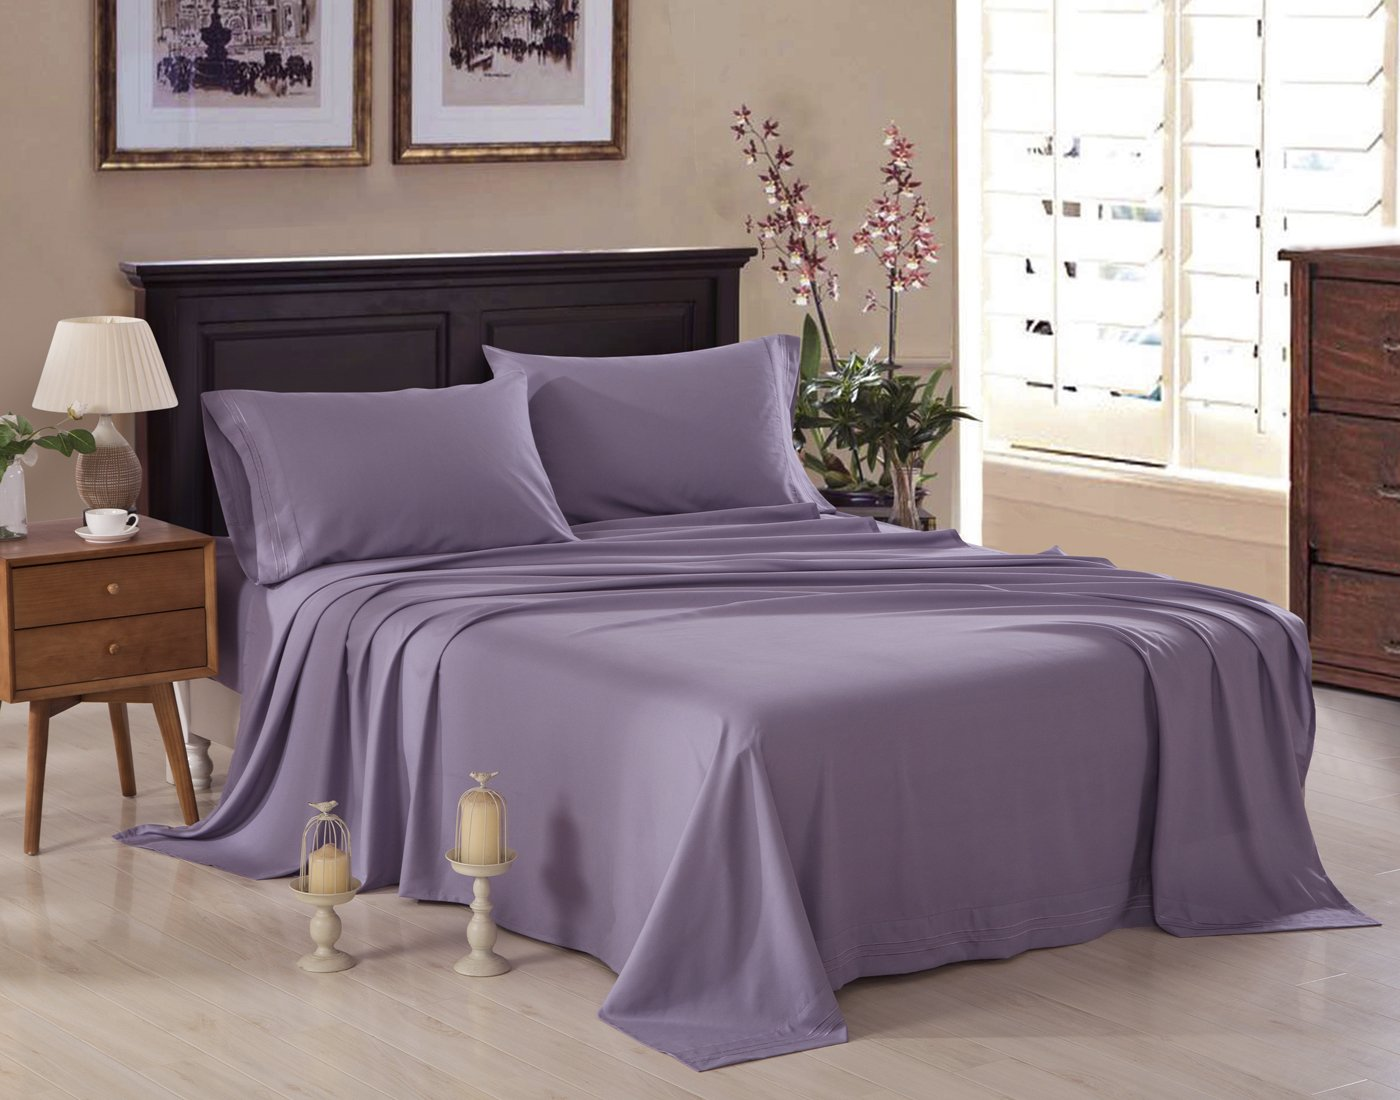 Honeymoon 1800 Brushed Microfiber Embroidered Bed Sheet Set, Ultra Soft, Full - Light Purple